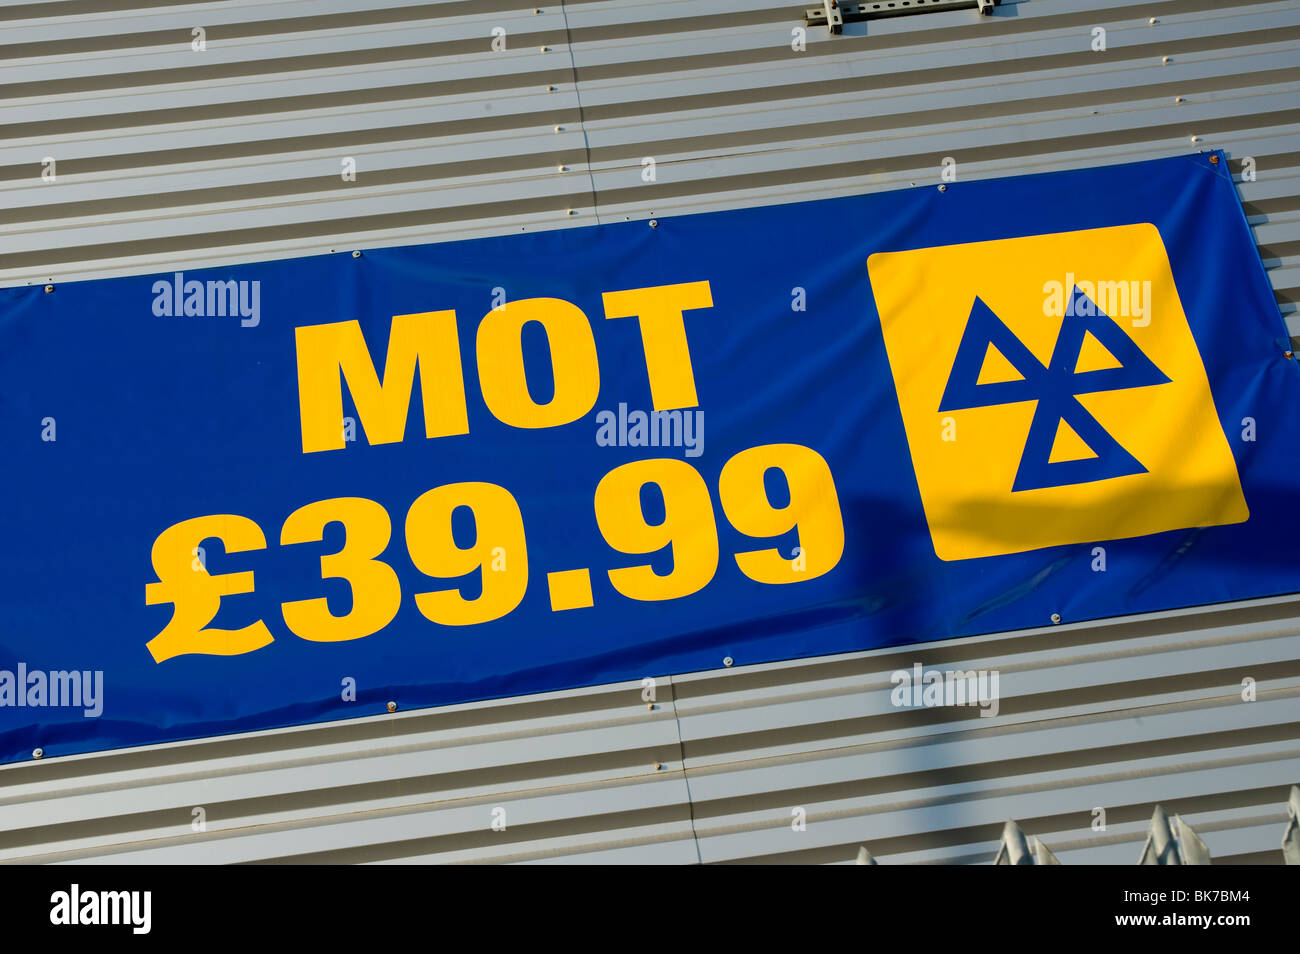 Sign showing cost to mot a vehicle on the side of a building in England - Stock Image